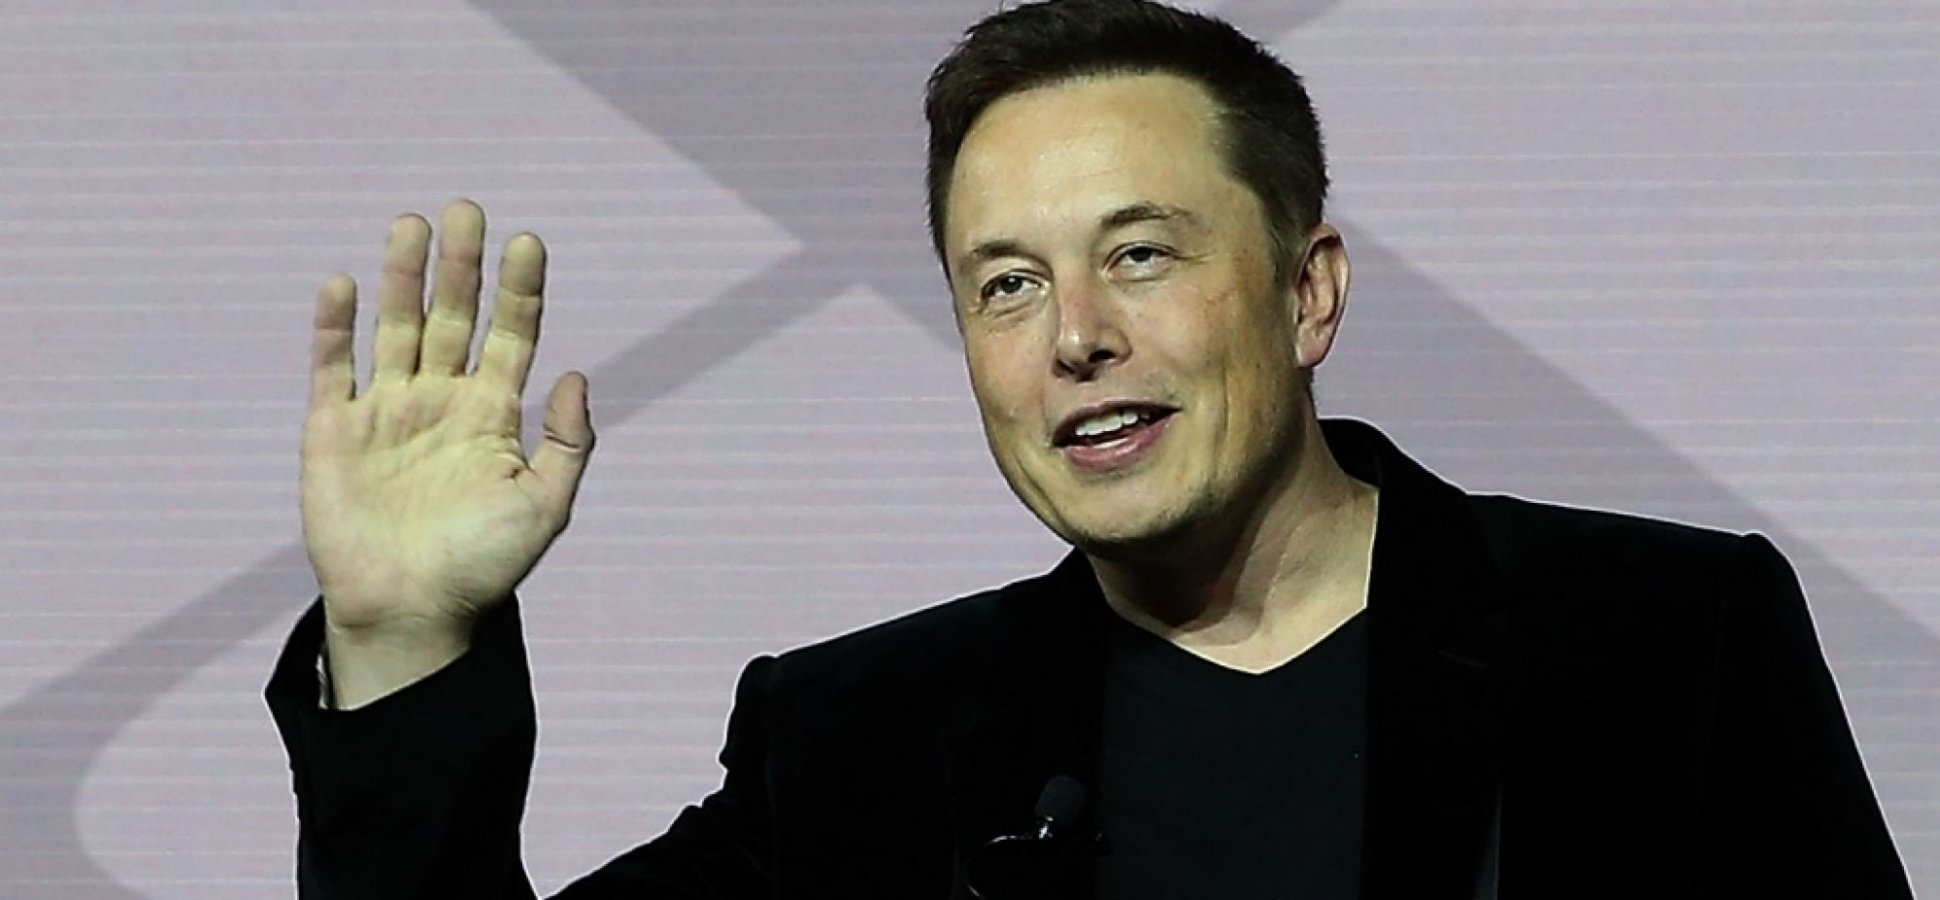 Twitter's CEO Asked Elon Musk to Speak to All of Twitter's Employees. Here's the Truly Surprising Way It Changed 1 Musk Fan's Life